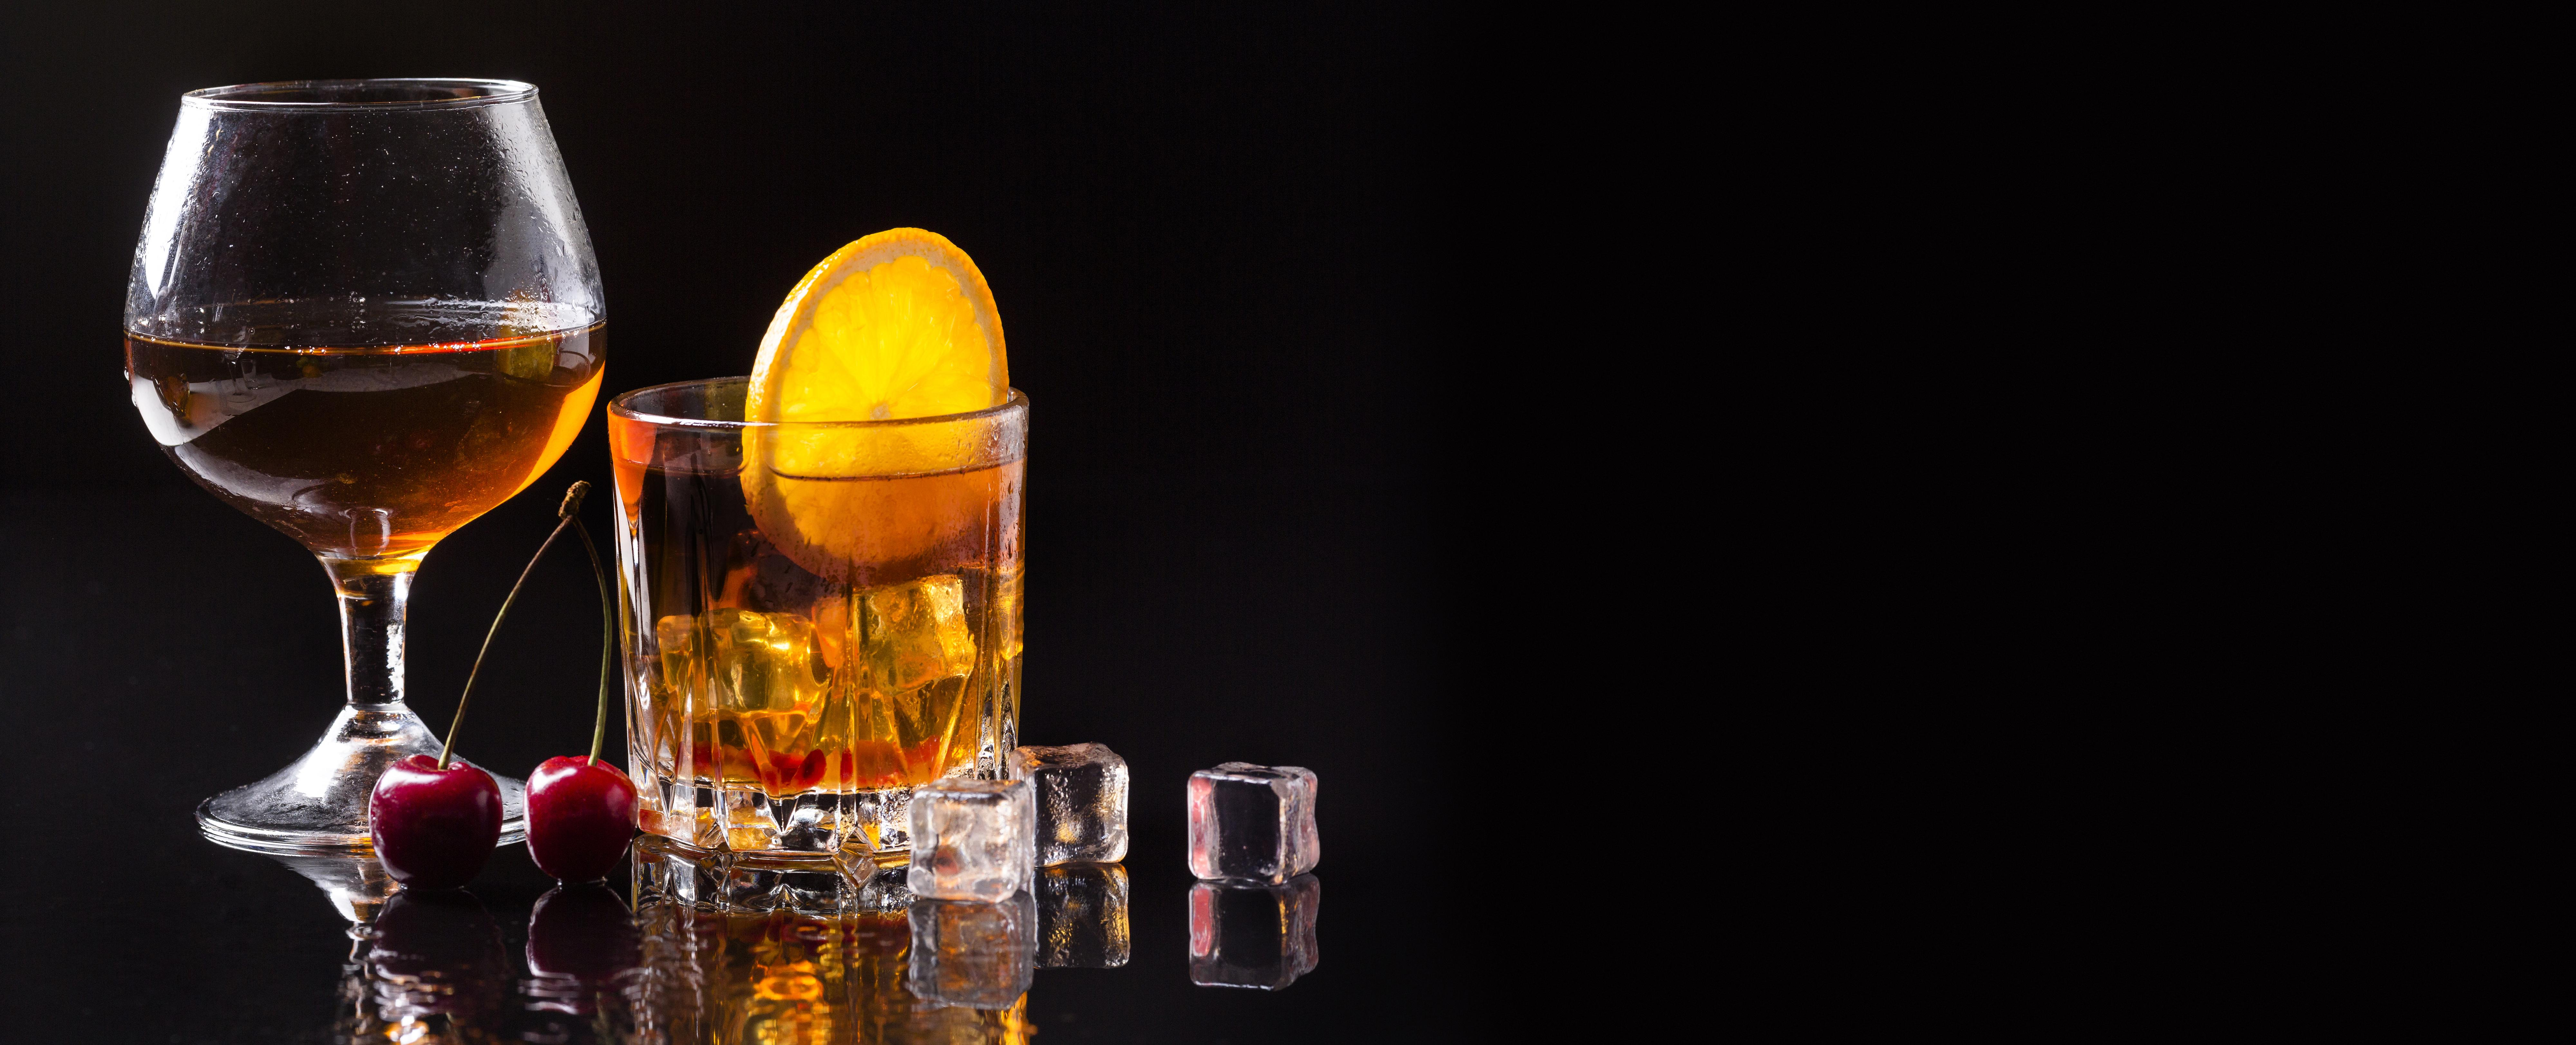 5 Start-ups Ruling the Alcoholic-Beverage Market in India